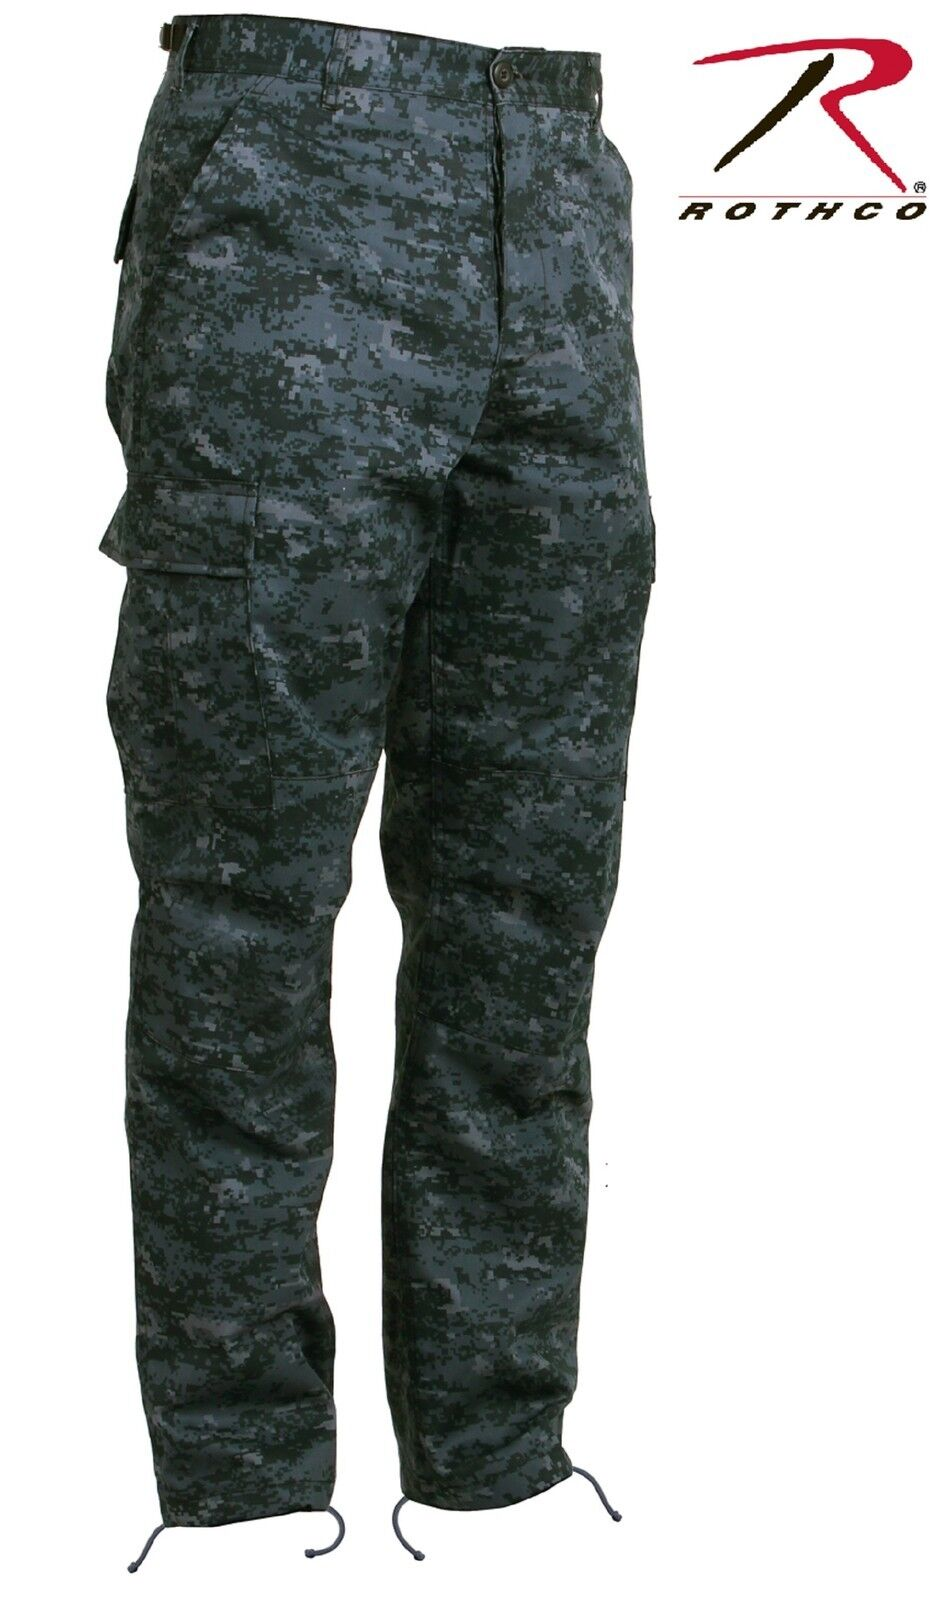 Midnight bluee Digital Camouflage BDU Cargo Pant - Mens Military Style Camo Pants